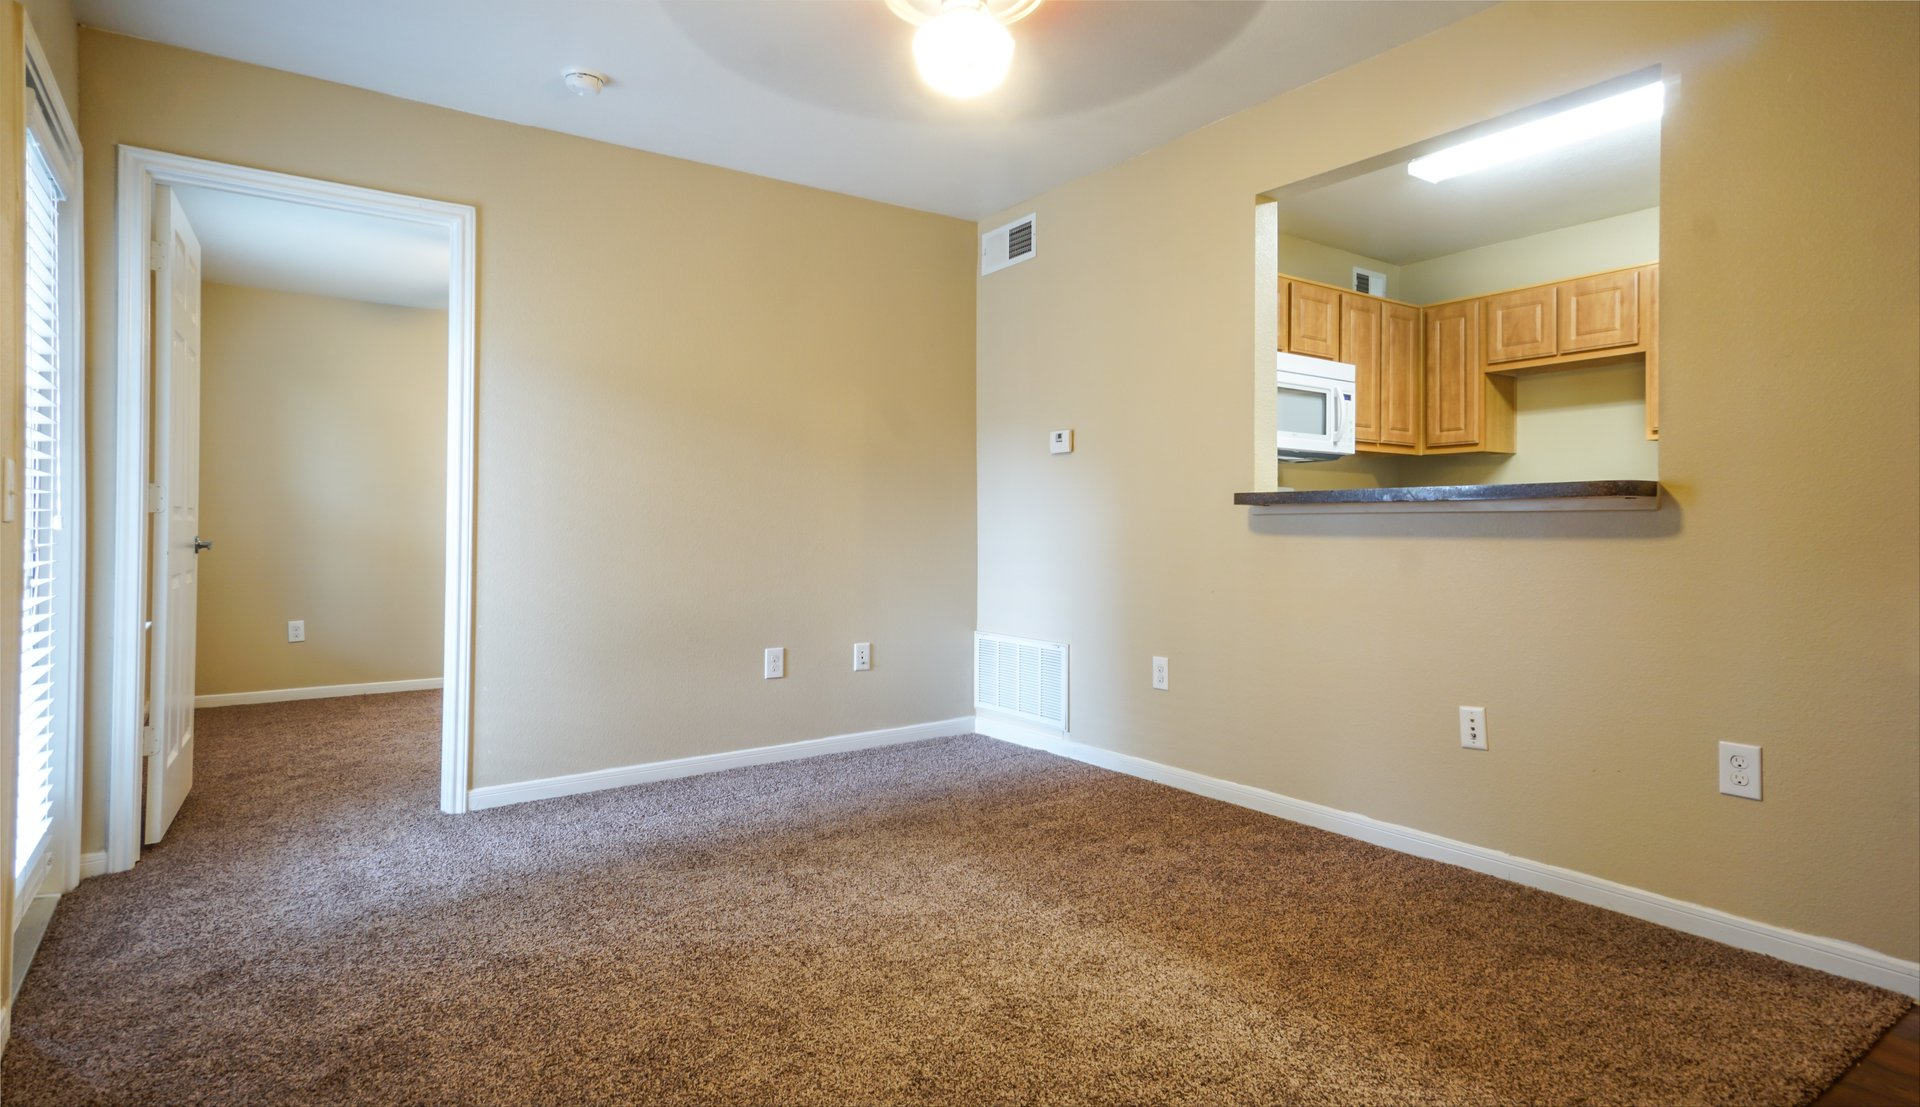 Premier apartments affordable 1 2 bedroom apartments - Cheap 2 bedroom apartments in houston tx ...